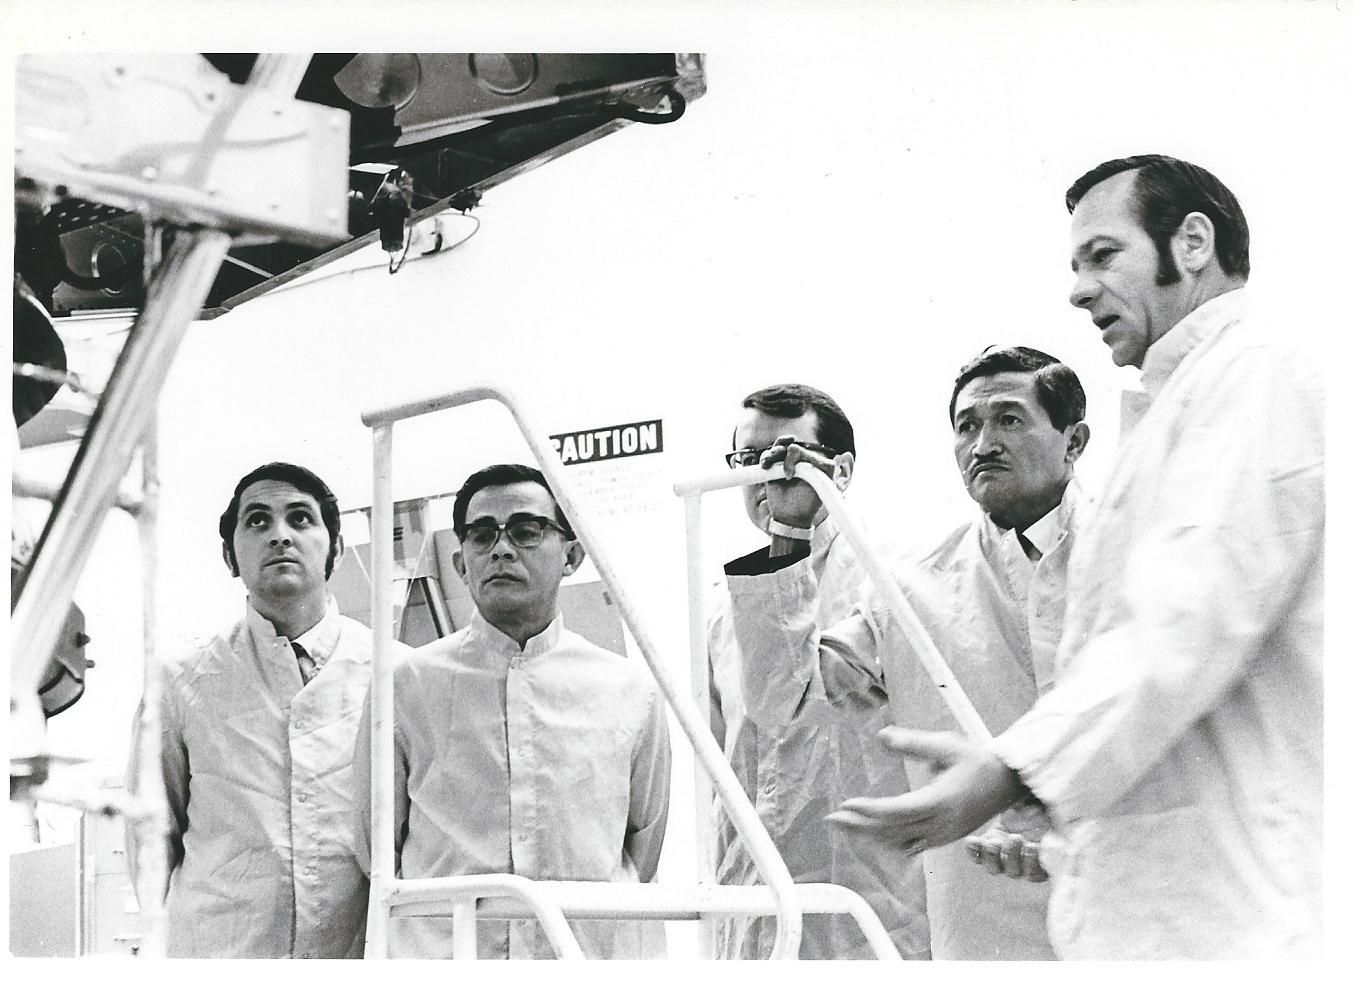 Figure 2. Facilities Tour April 1971 –Left to right: Will Turk, Suttangar Tengker, Dick Brandes, General Soehardjono and Ralph Mitchell